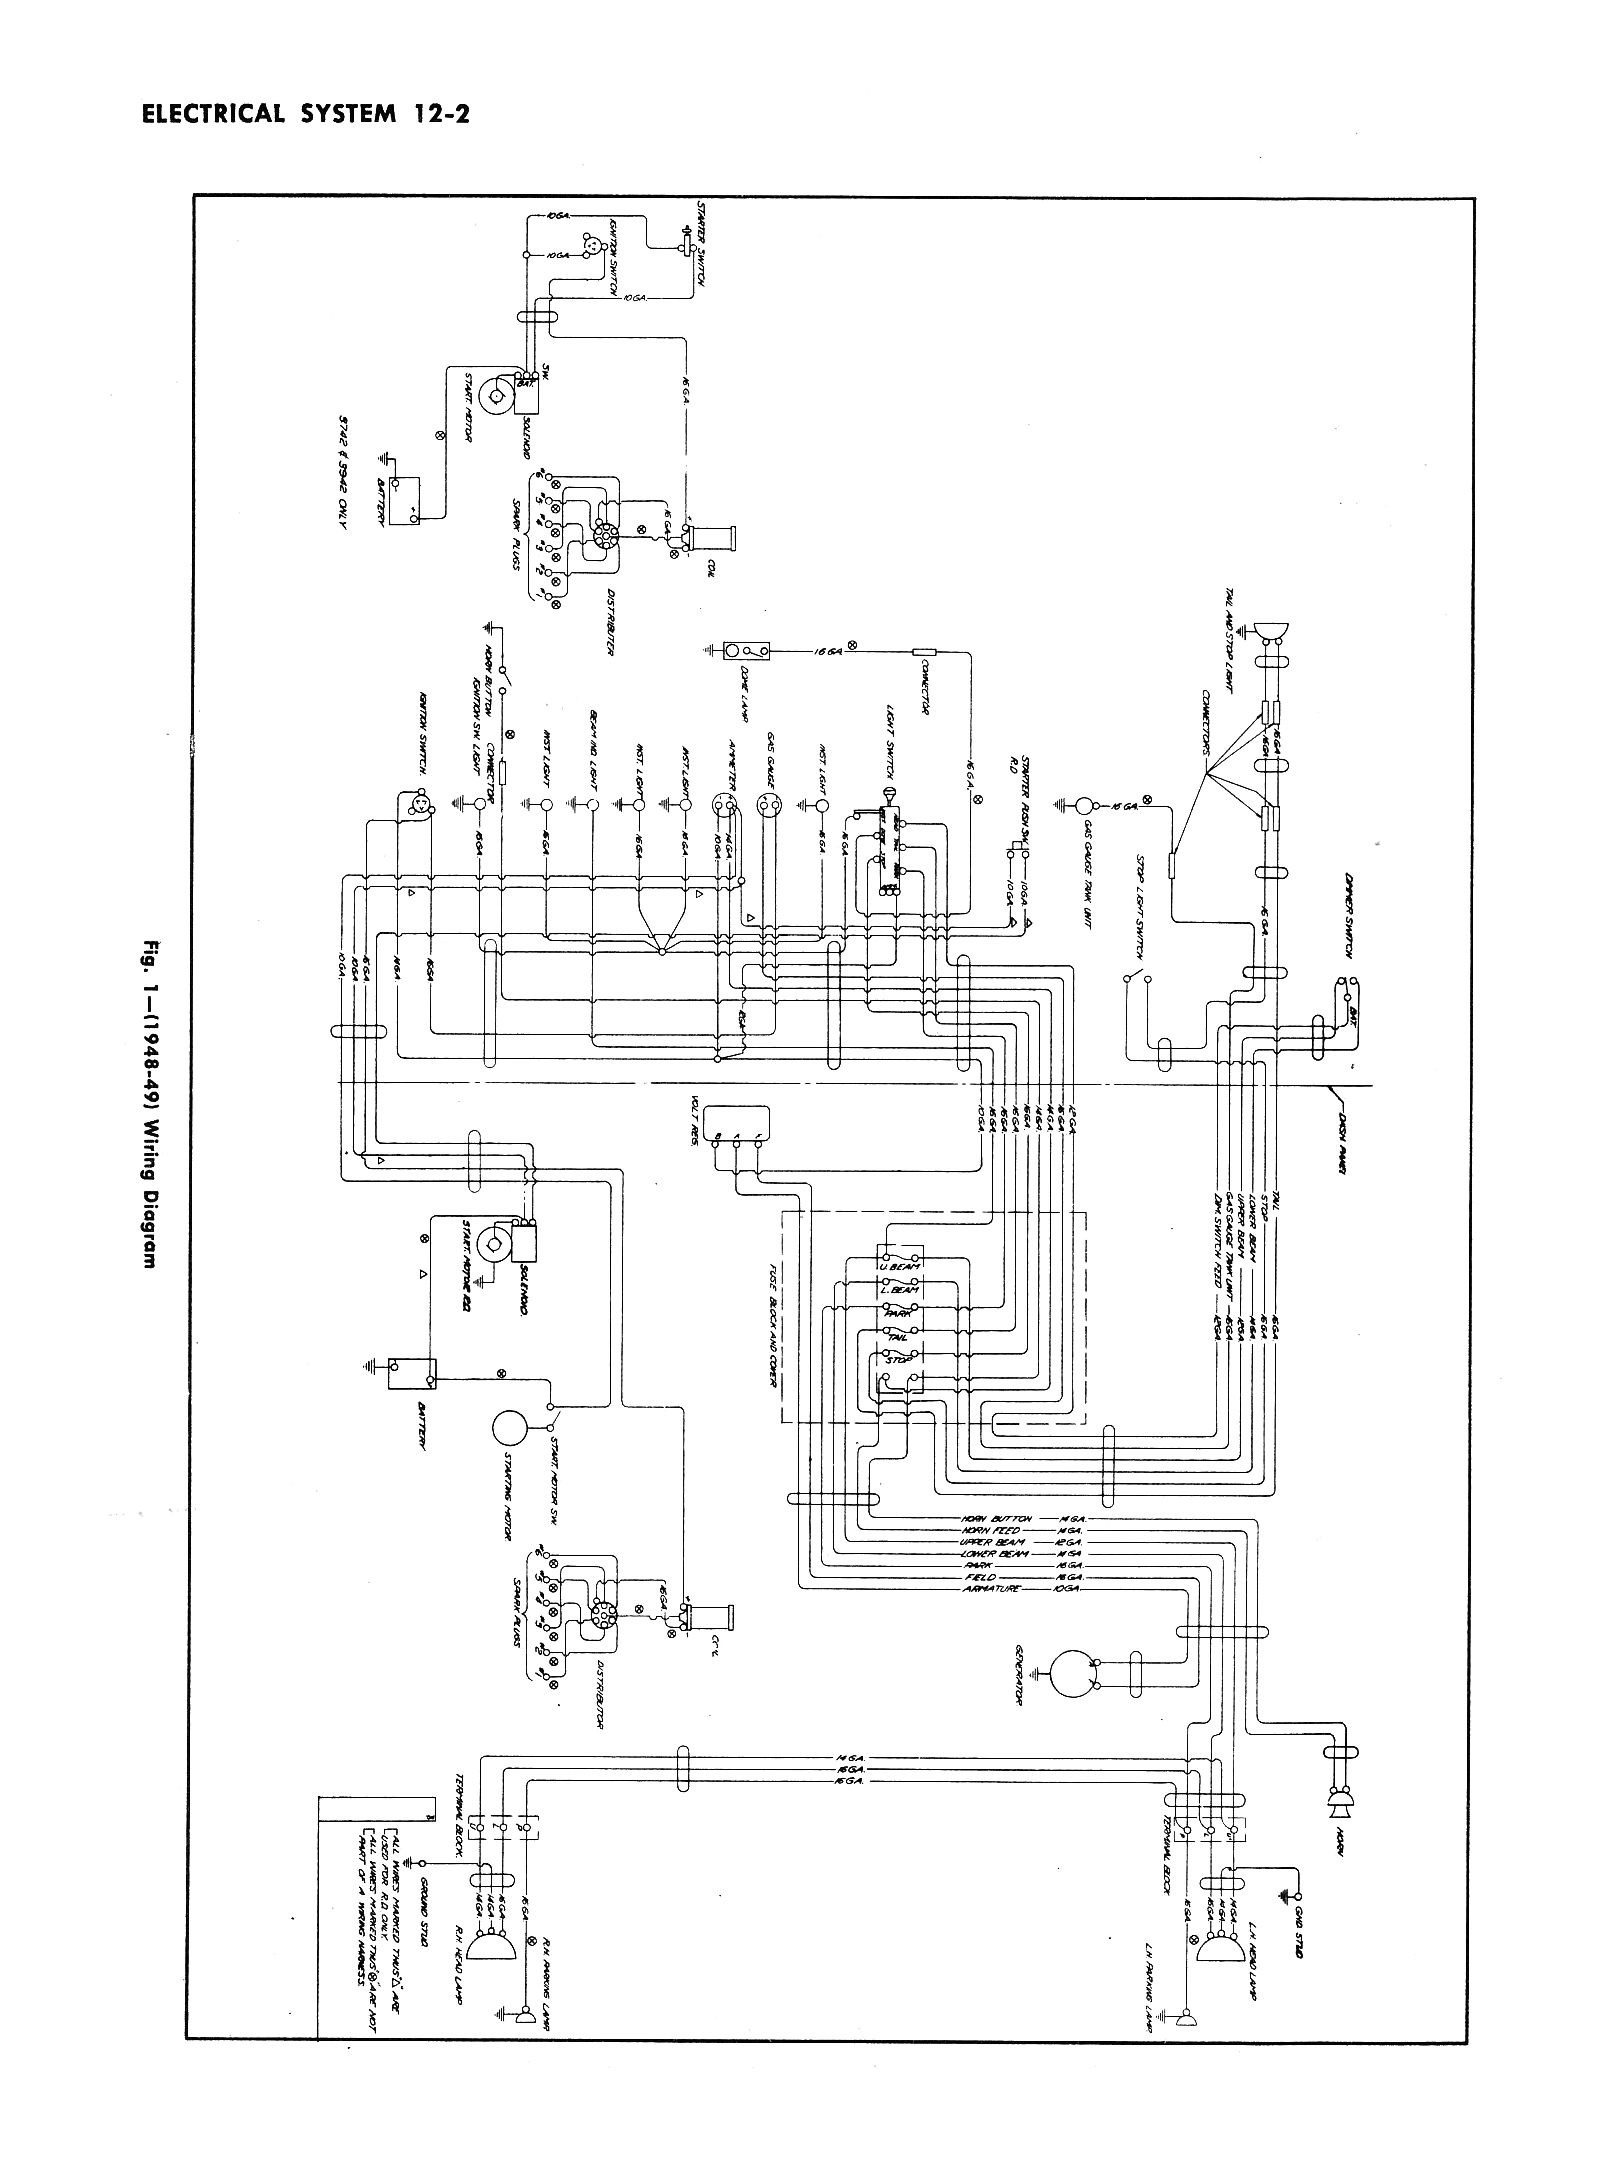 Wiring Diagram For Gmc